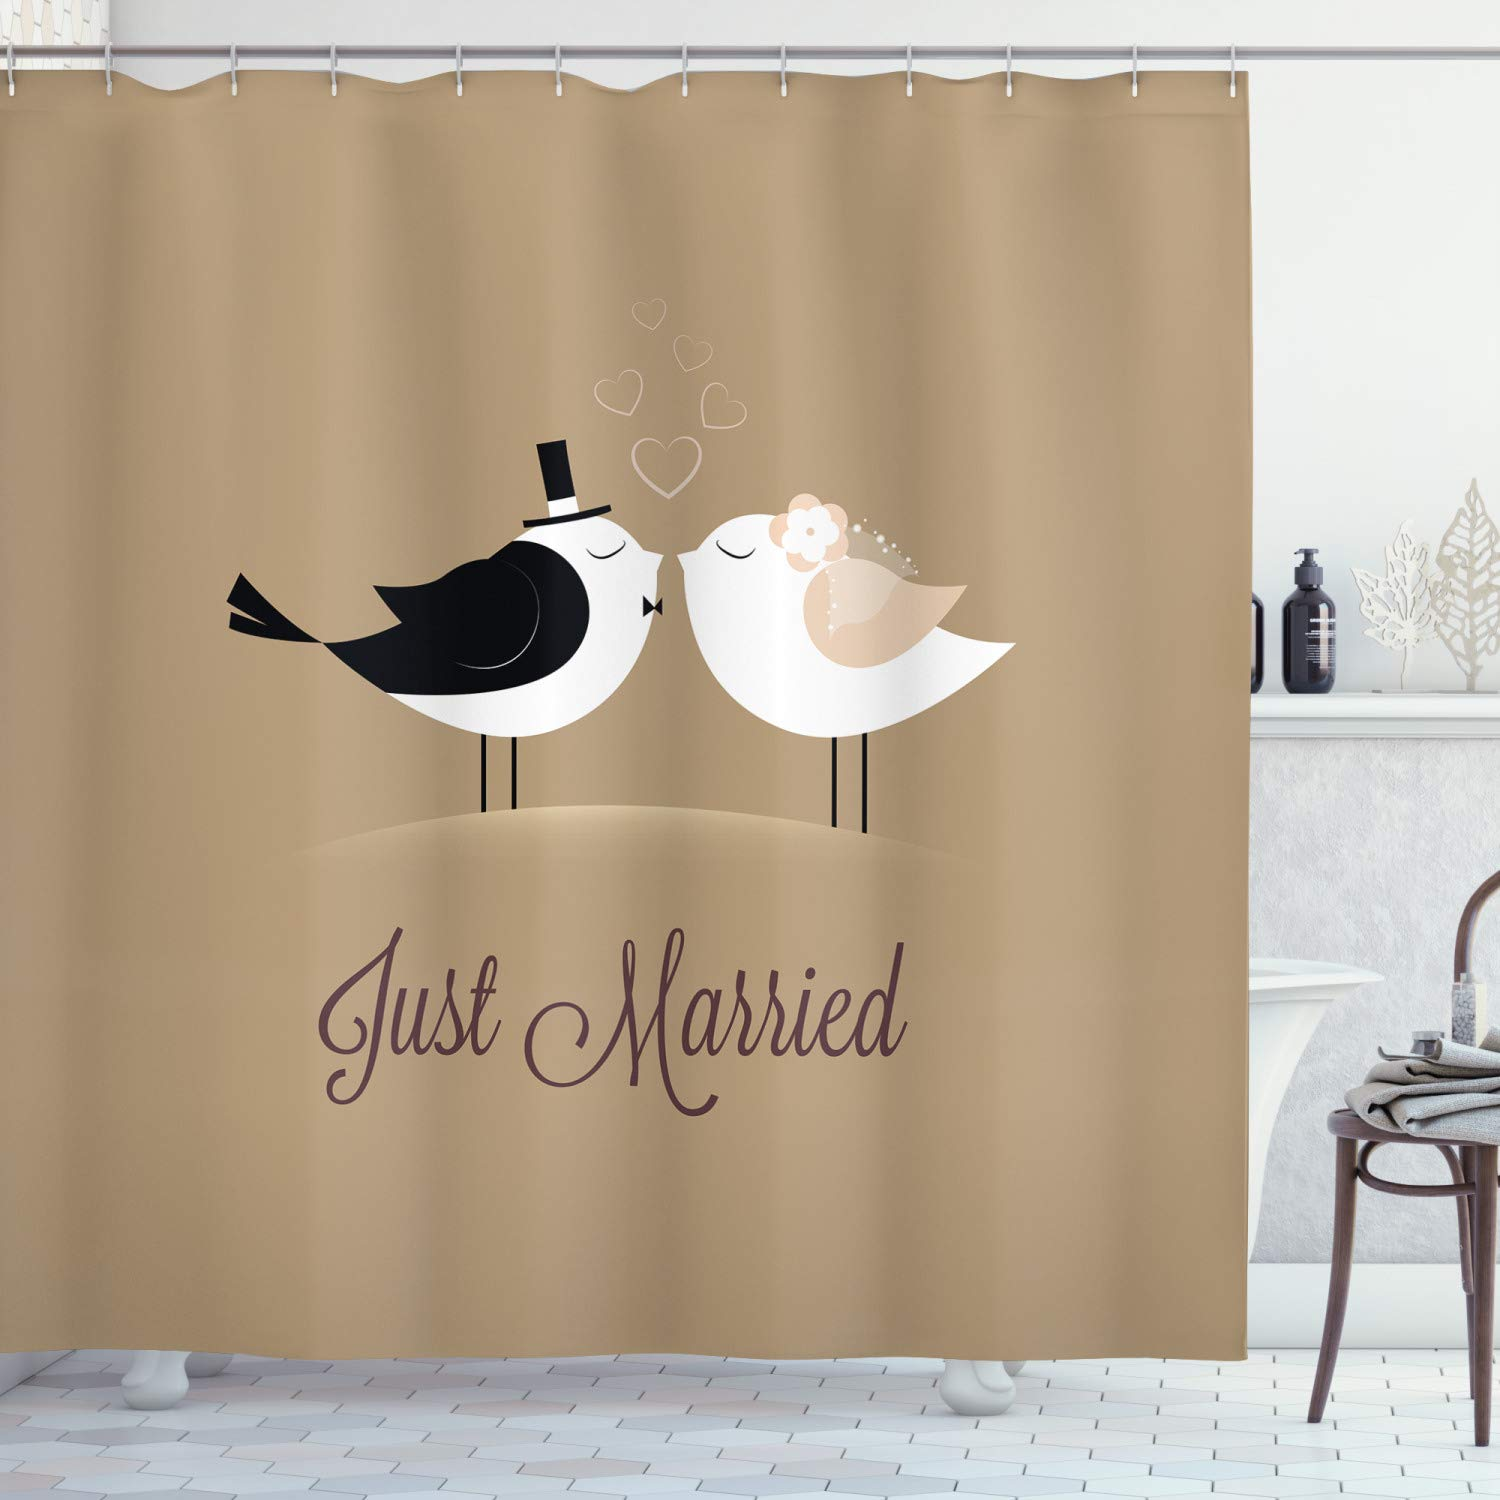 """Ambesonne Wedding Shower Curtain, Bride and Groom Birds Kissing Just Married Hand Written Style Text Romantic Hearts, Cloth Fabric Bathroom Decor Set with Hooks, 75"""" Long, Taupe Black"""